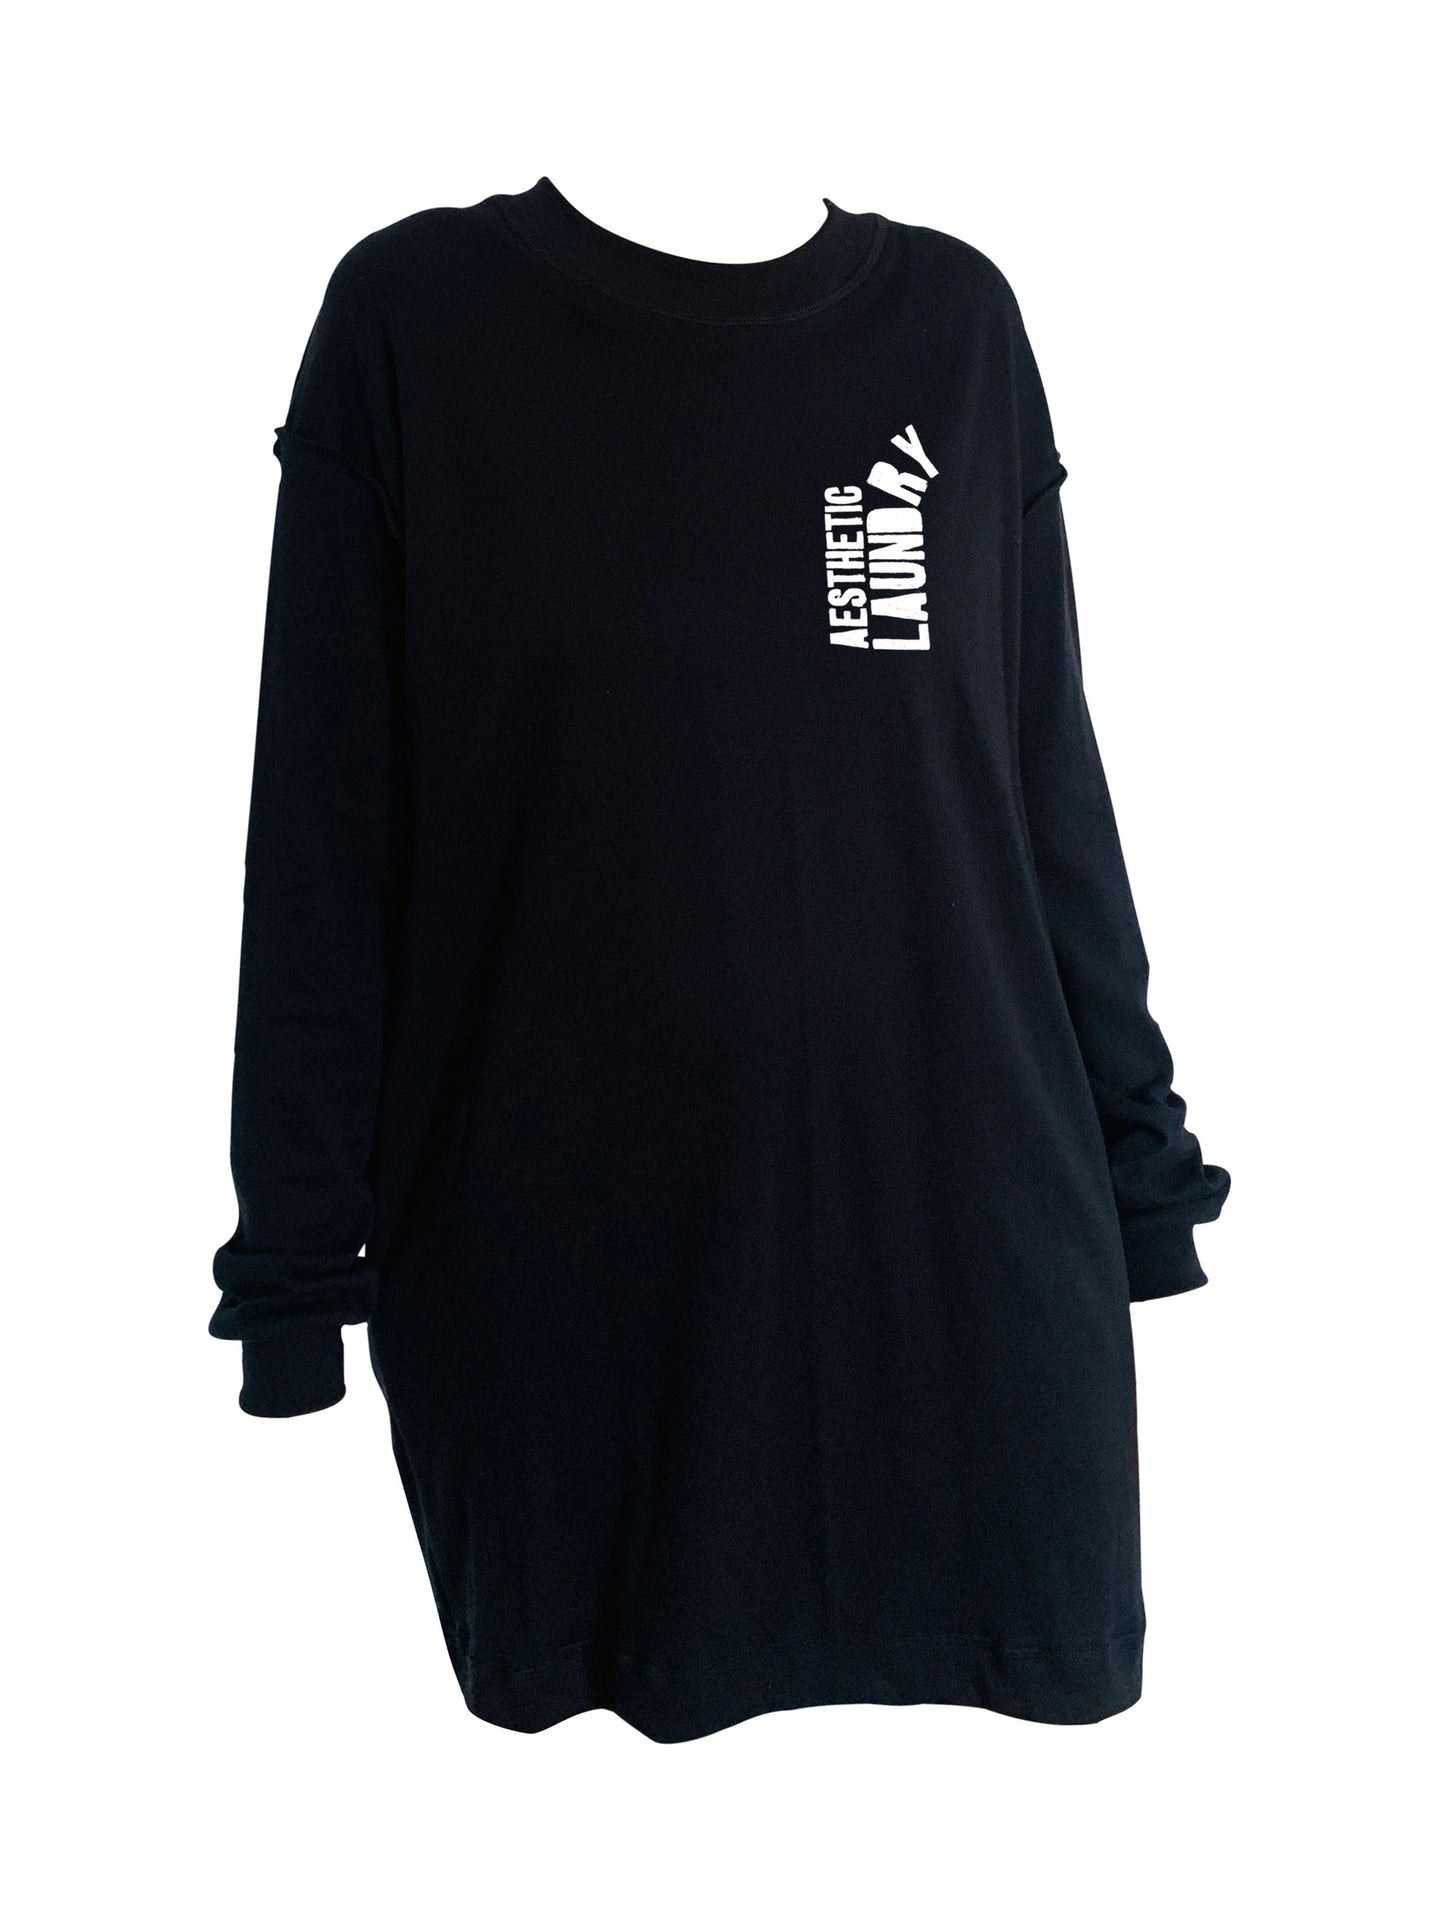 Broken Logo Long Sleeved T-Shirt Dress - Black